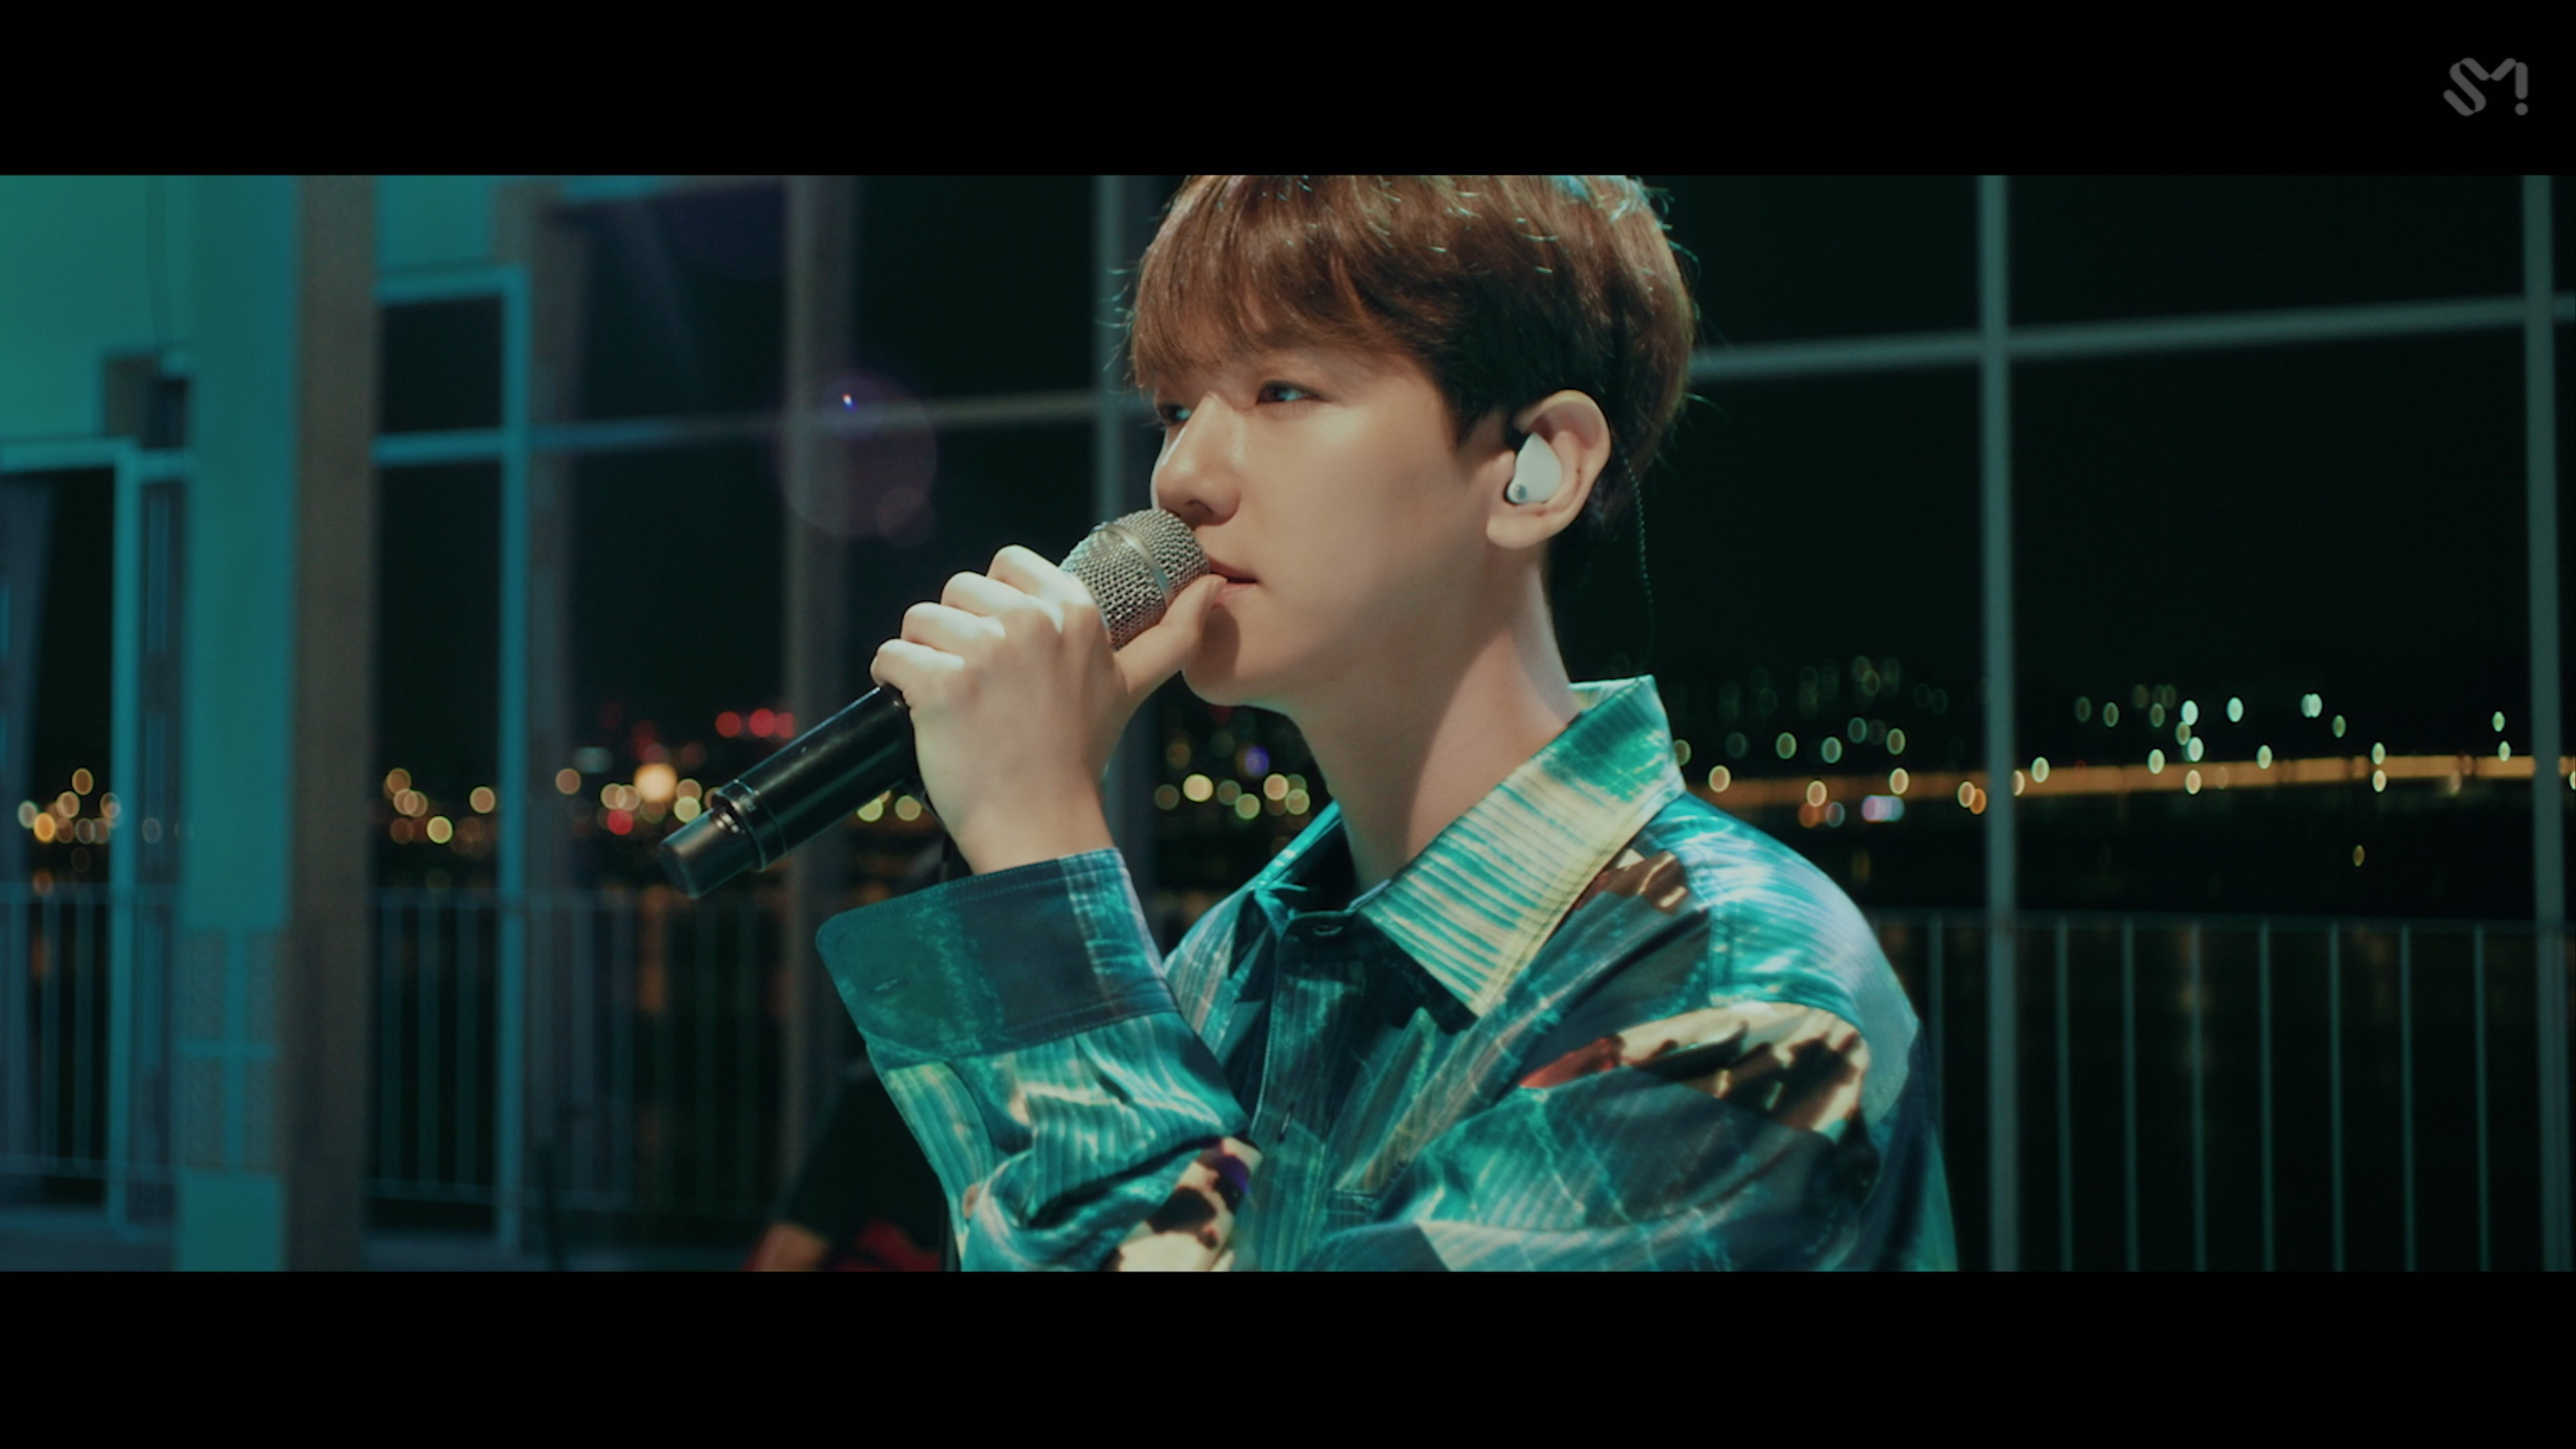 [STATION] BAEKHYUN 백현 '공중정원 (Garden In The Air)' Live Video - Our Beloved BoA #1